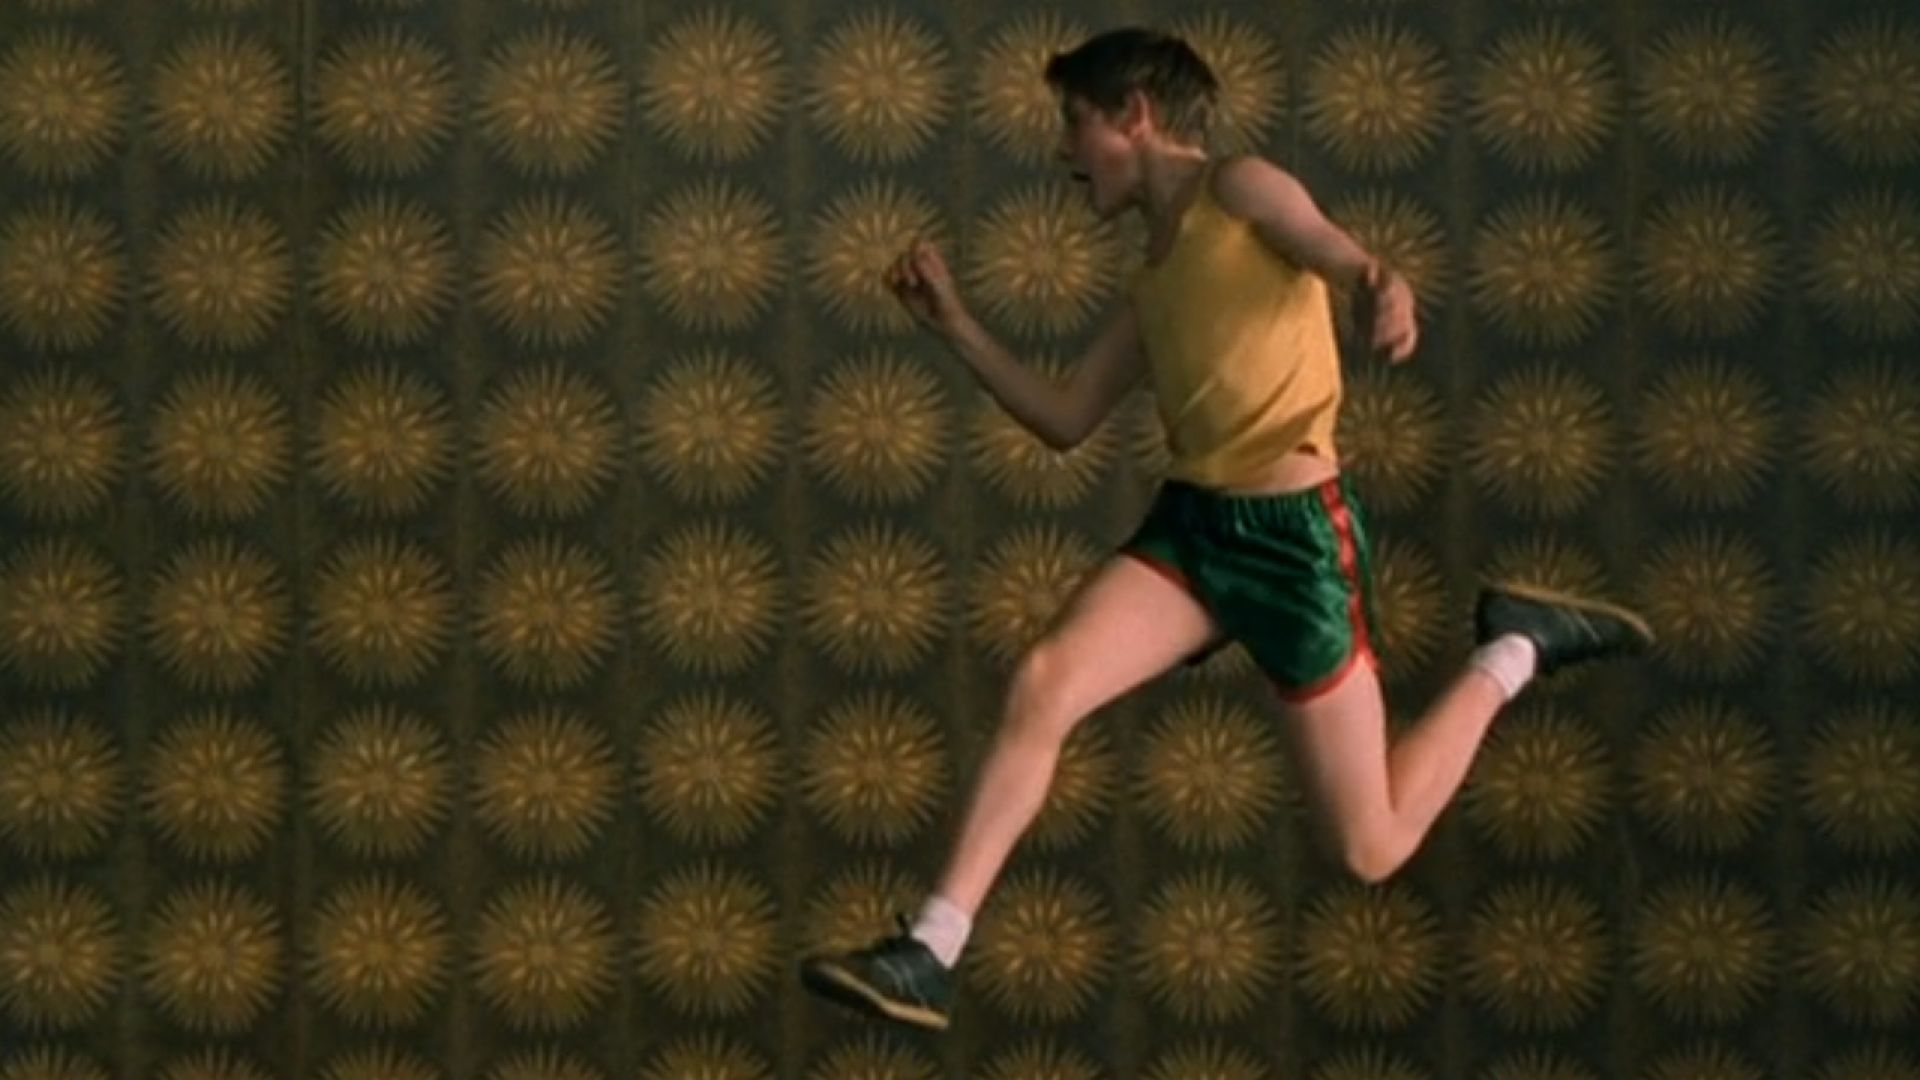 billy elliot the movie review Billy elliot movie review summary actors:  a strike at the only mine in town destabilizes the elliot's poor family that is treating billy as a scapegoat.